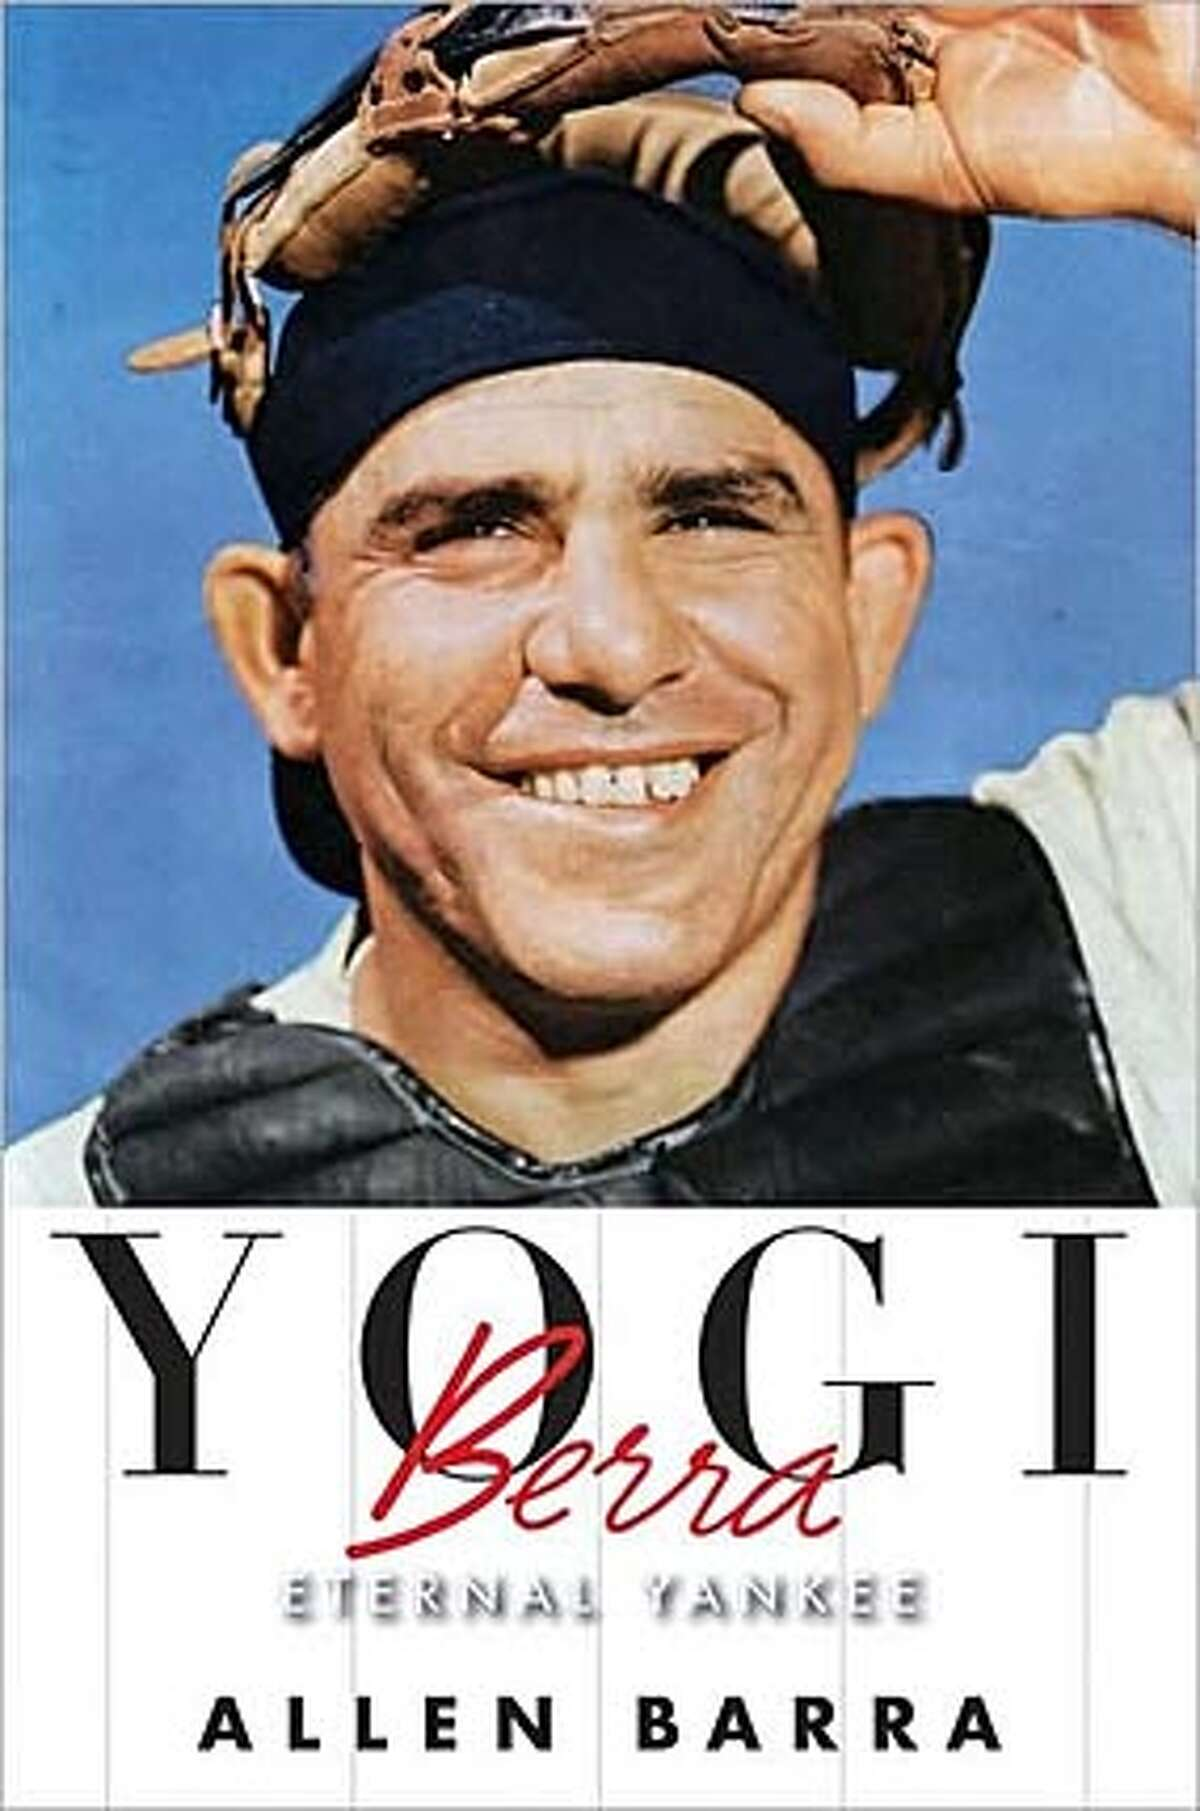 'Yogi Berra: Eternal Yankee' By Allen Barra